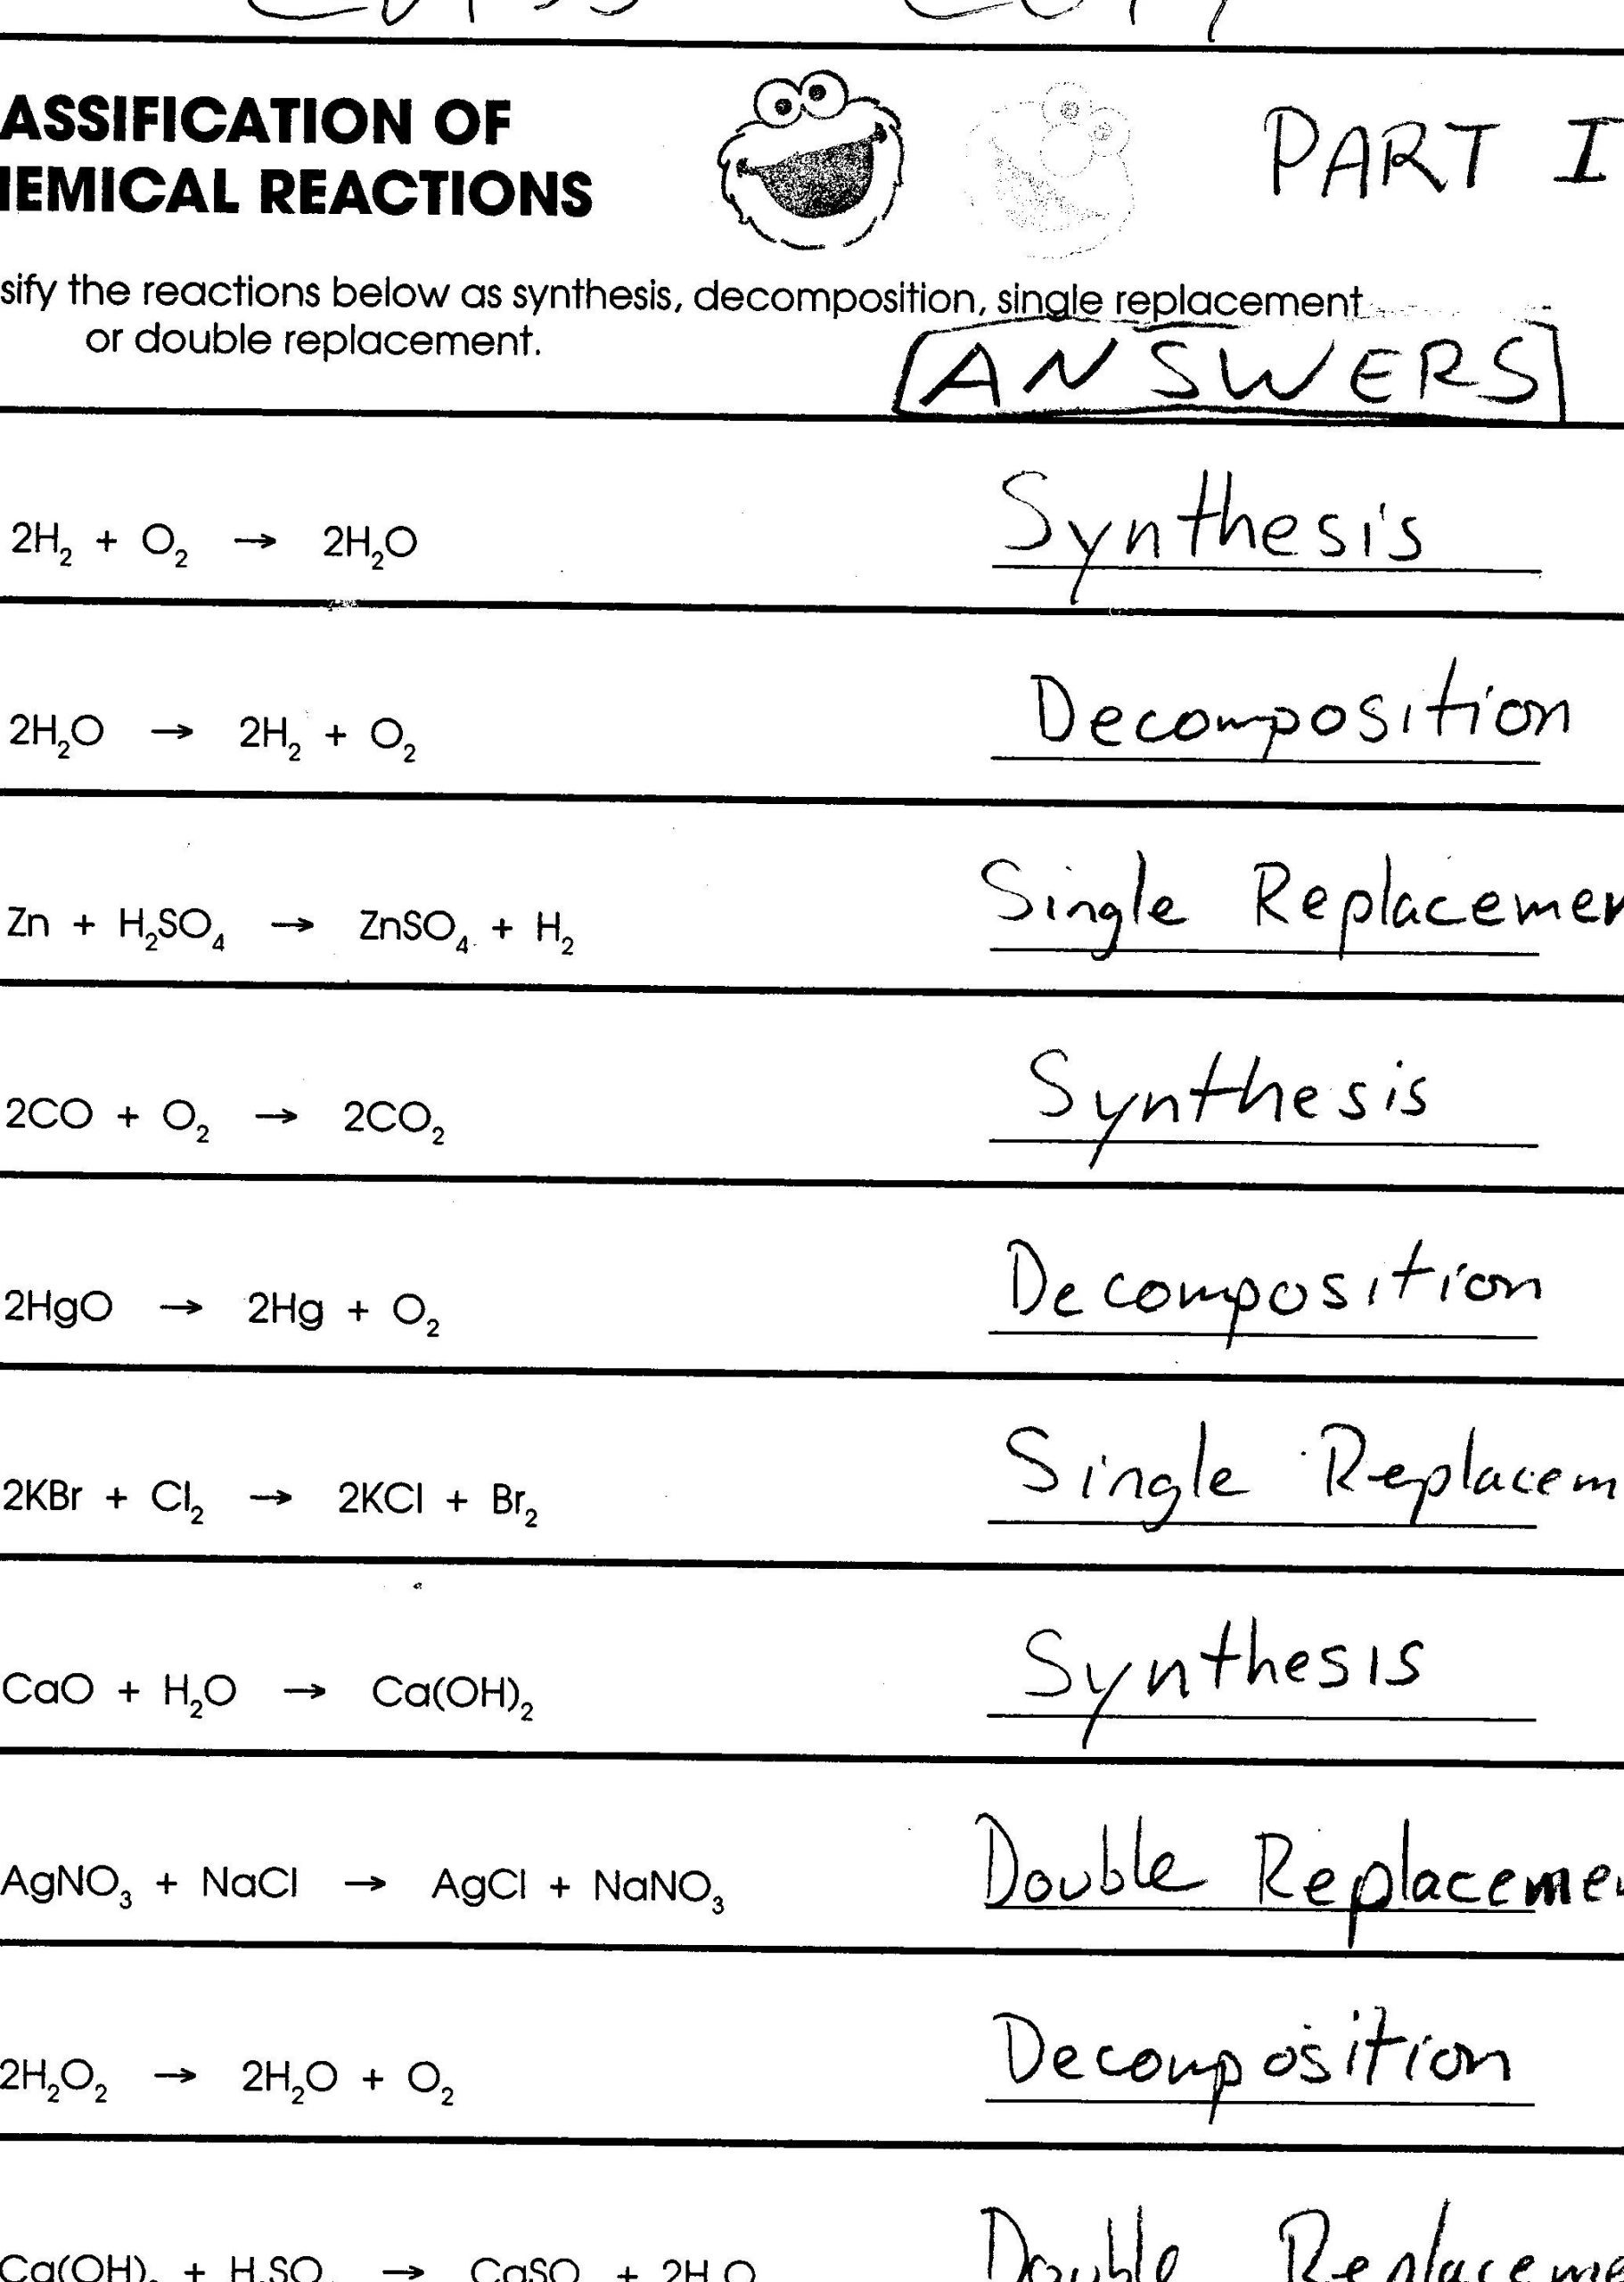 Types Of Reactions Worksheet 10 Classifying Chemical Reactions Worksheet Answers